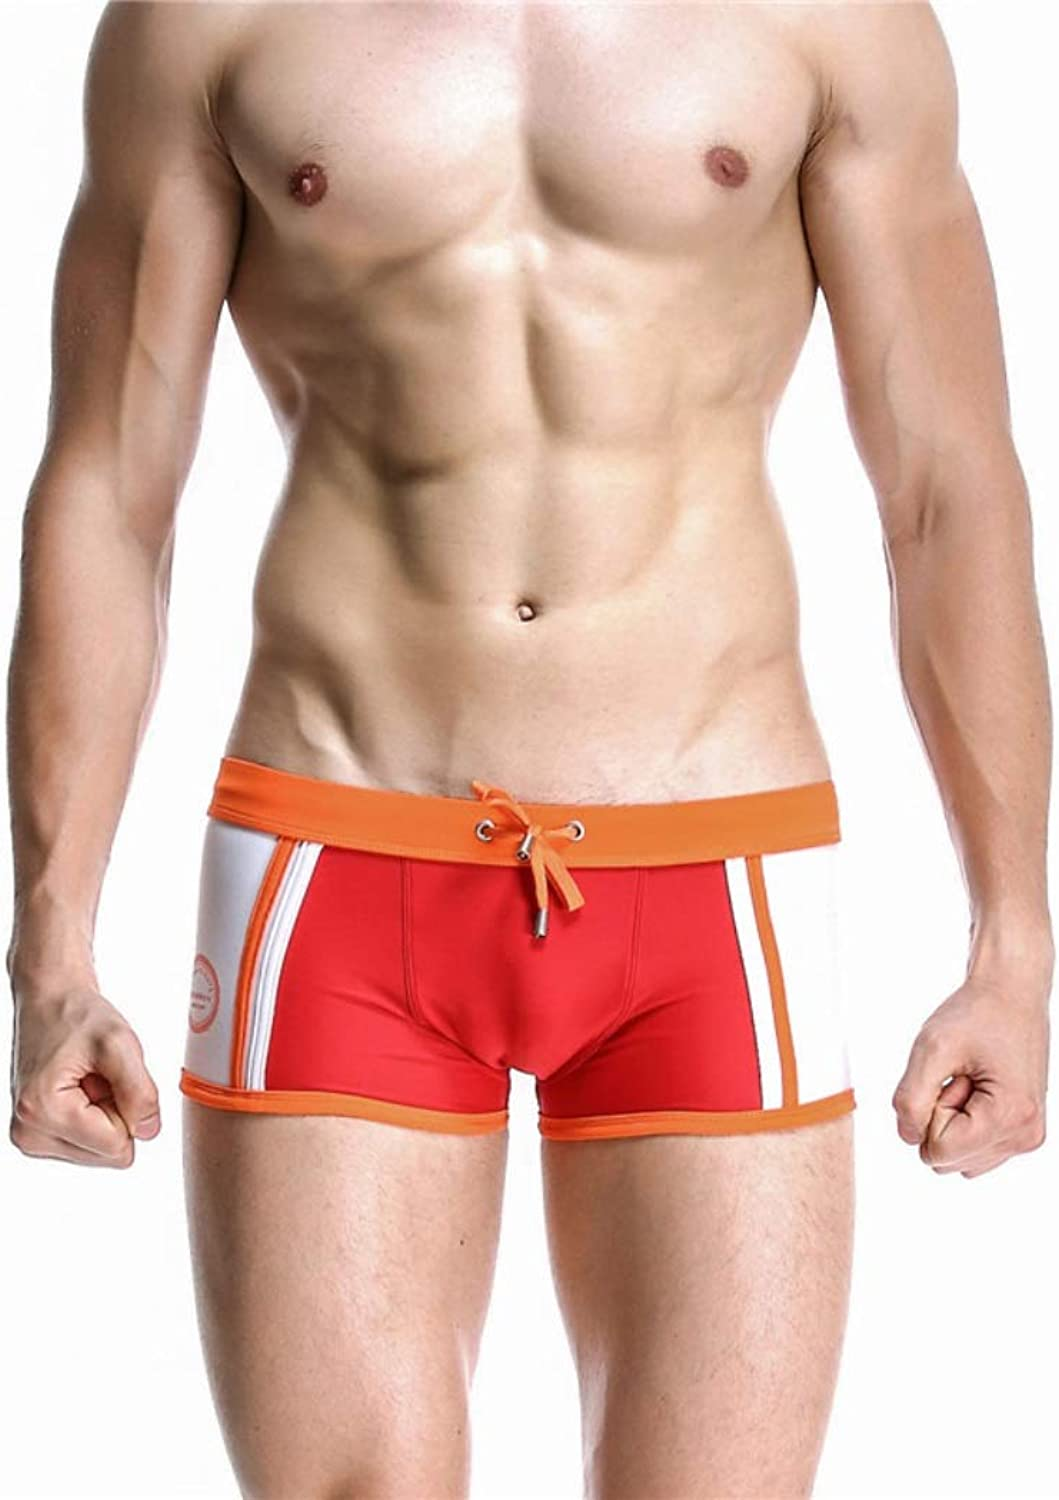 Songlin@yuan Sexy Men's Elastic Solid Swimming Shorts, QuickDrying Men's Swimming Boxer Shorts, Polyester Beautiful